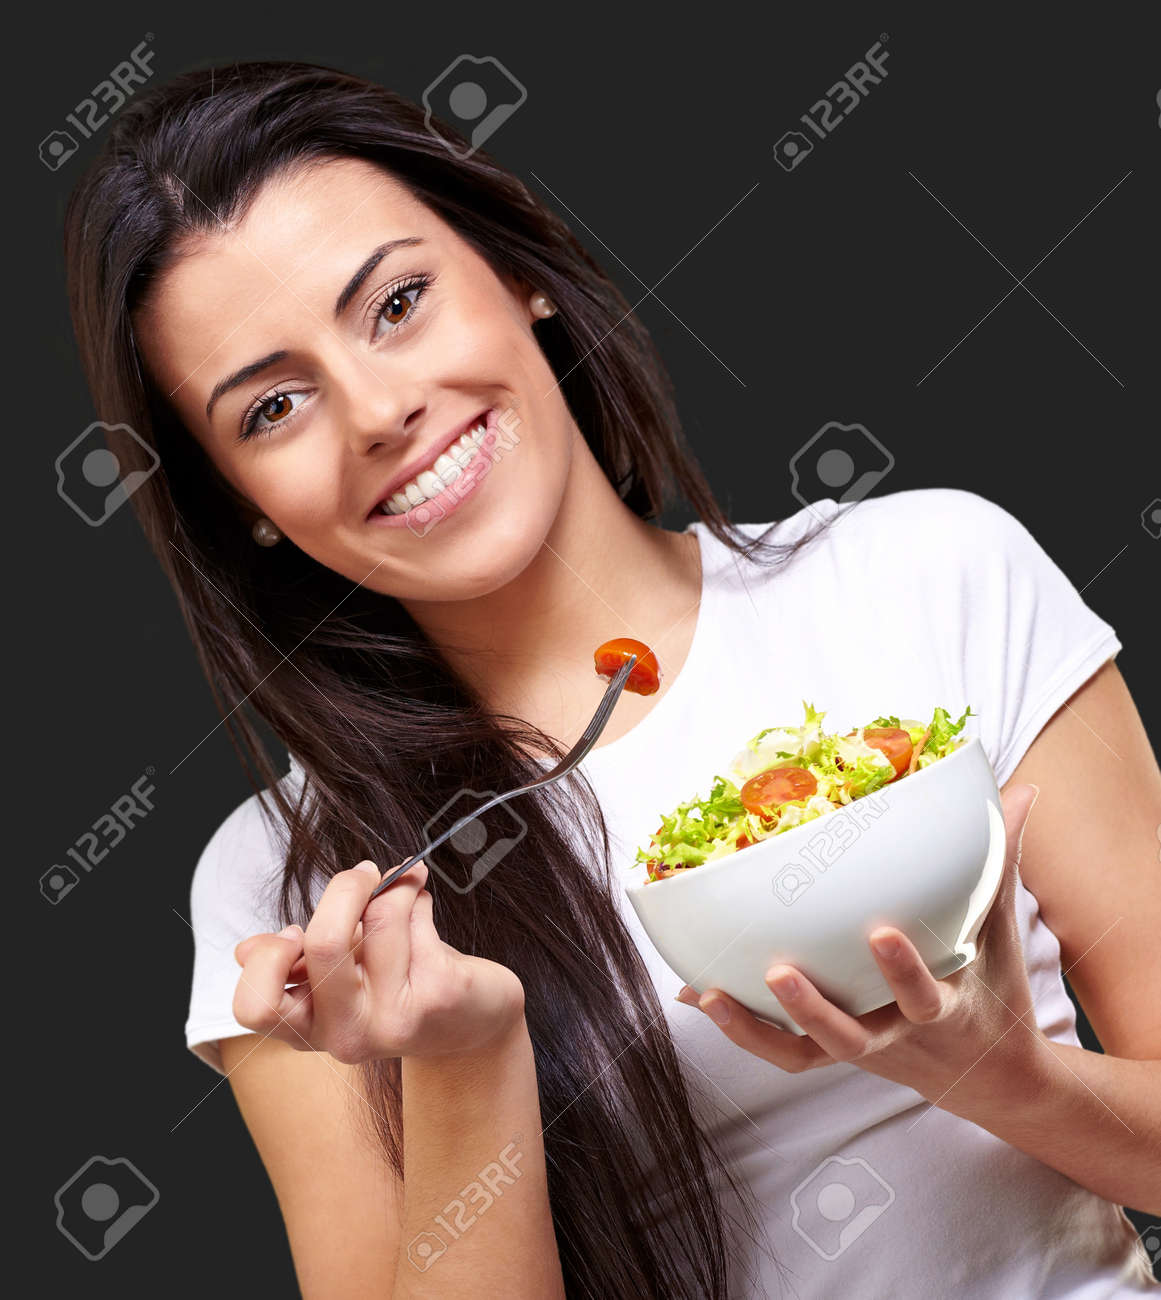 portrait of healthy woman eating salad against a black background Stock Photo - 13844766